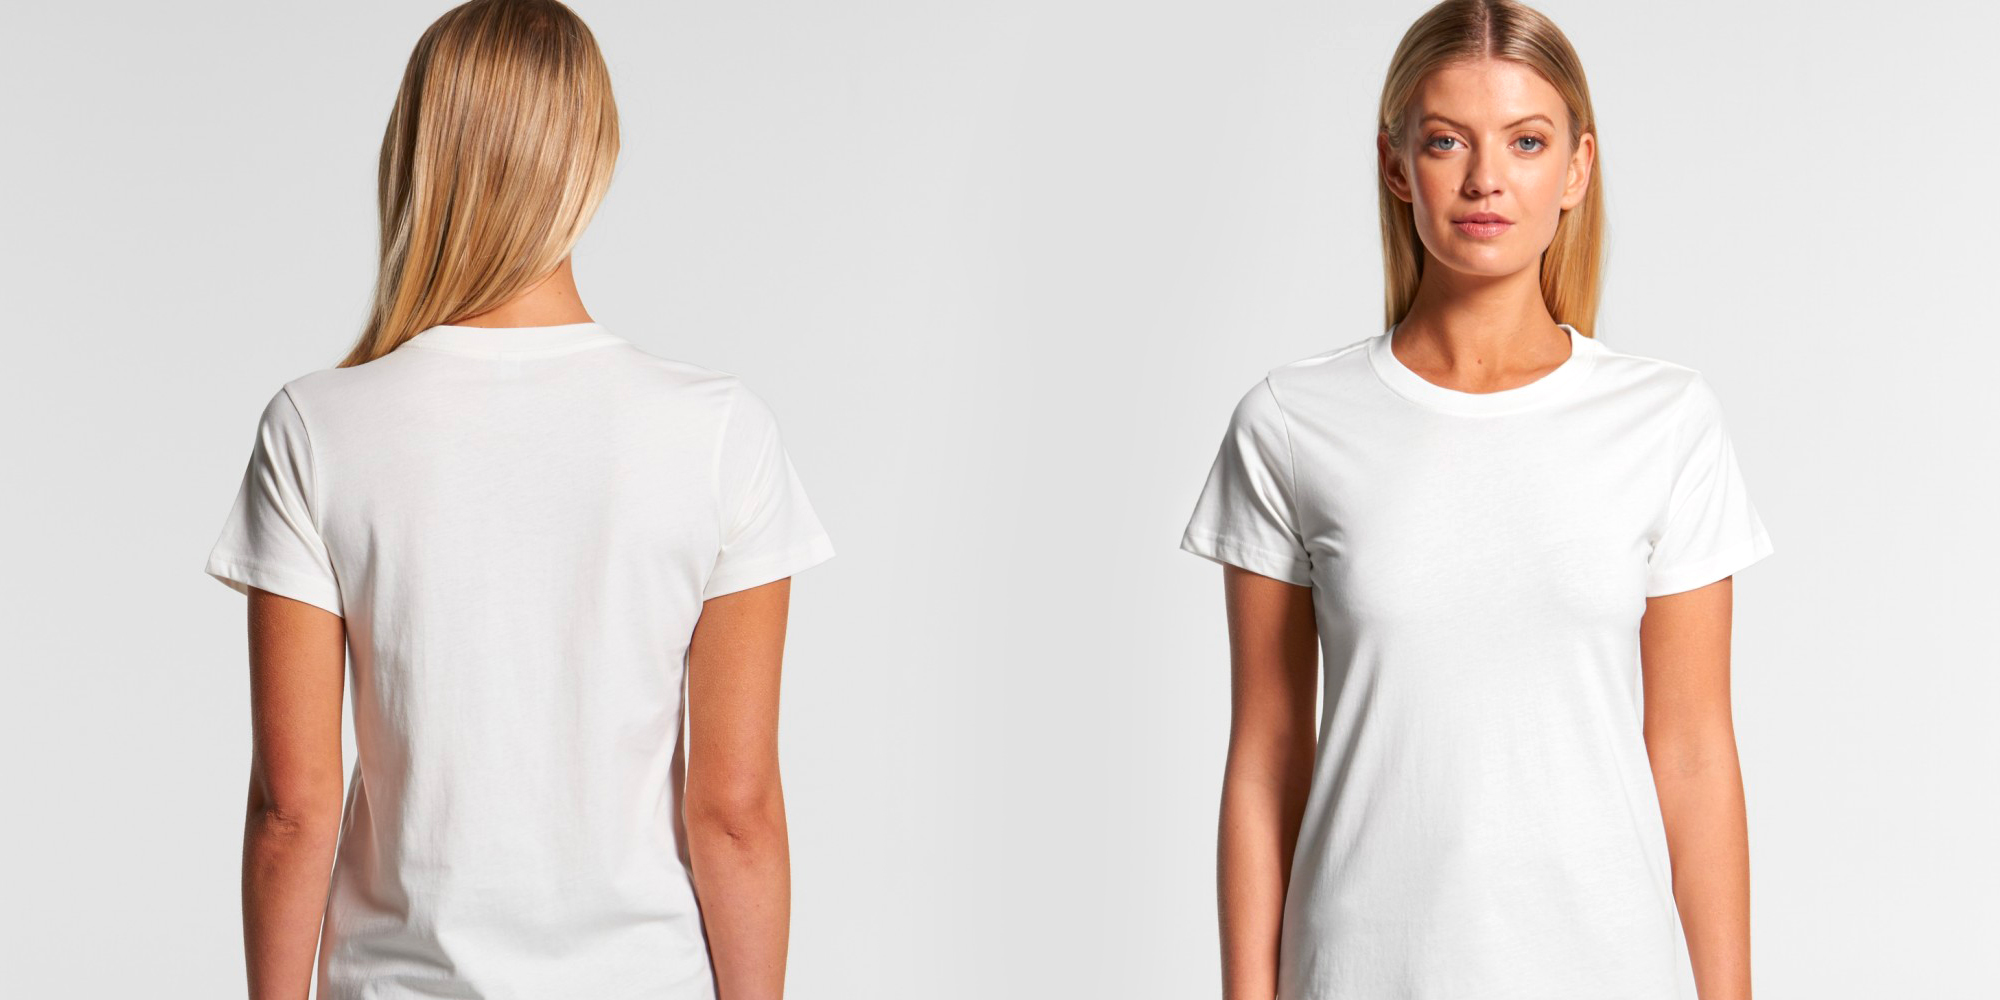 10 Ways to Grow Your Business with Promotional Tees